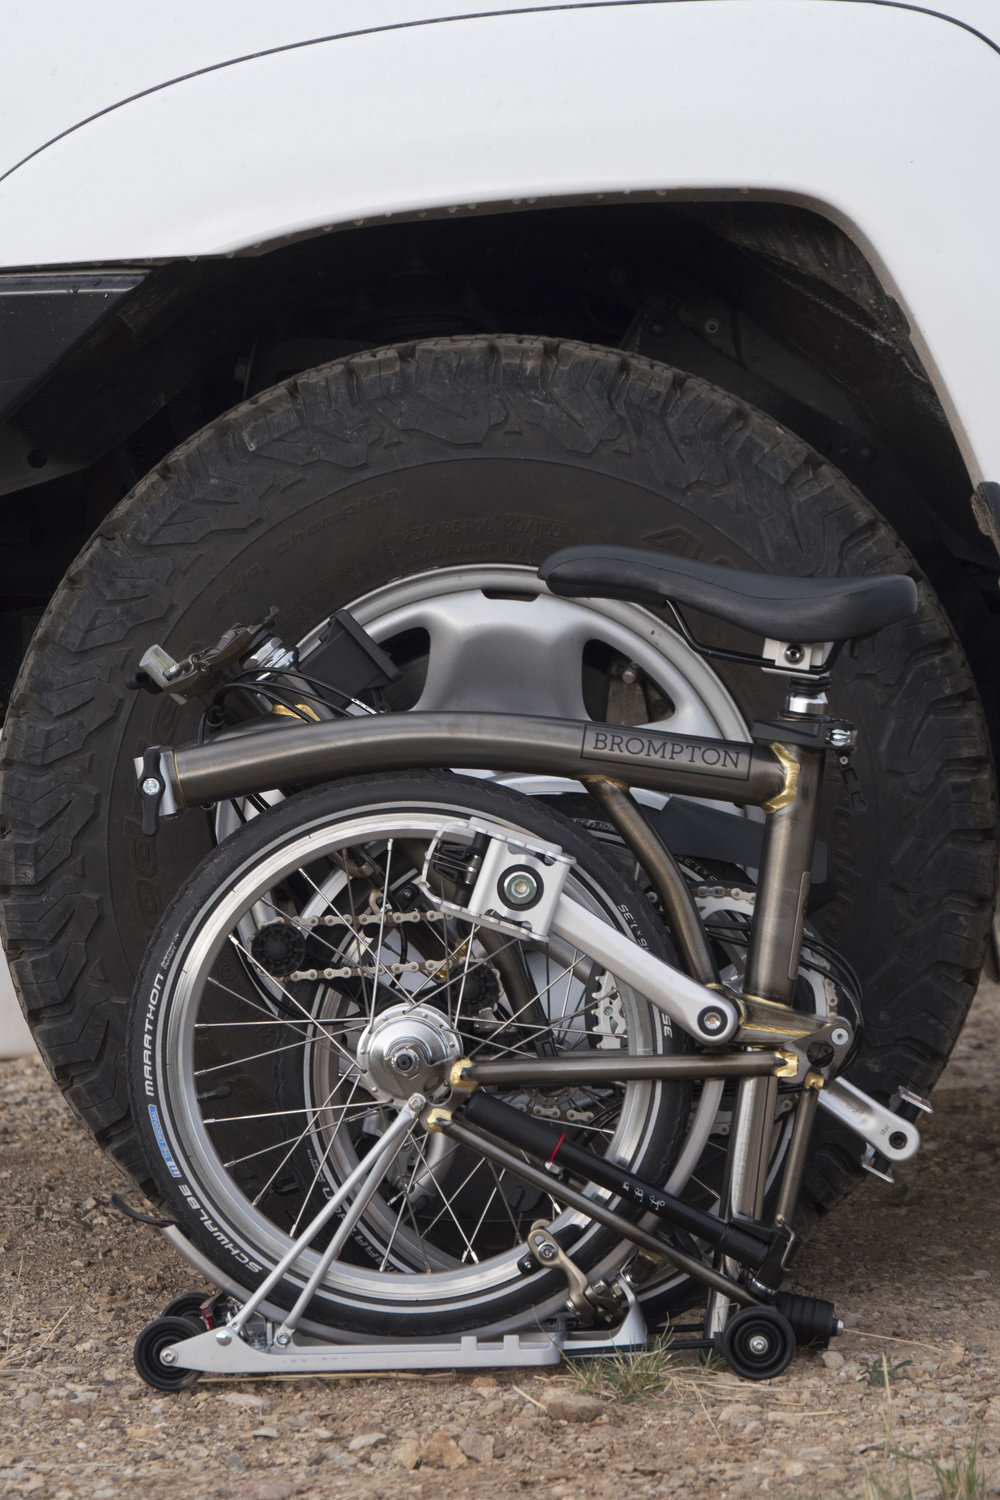 The Brompton next to a modest 31-inch-tall BFG